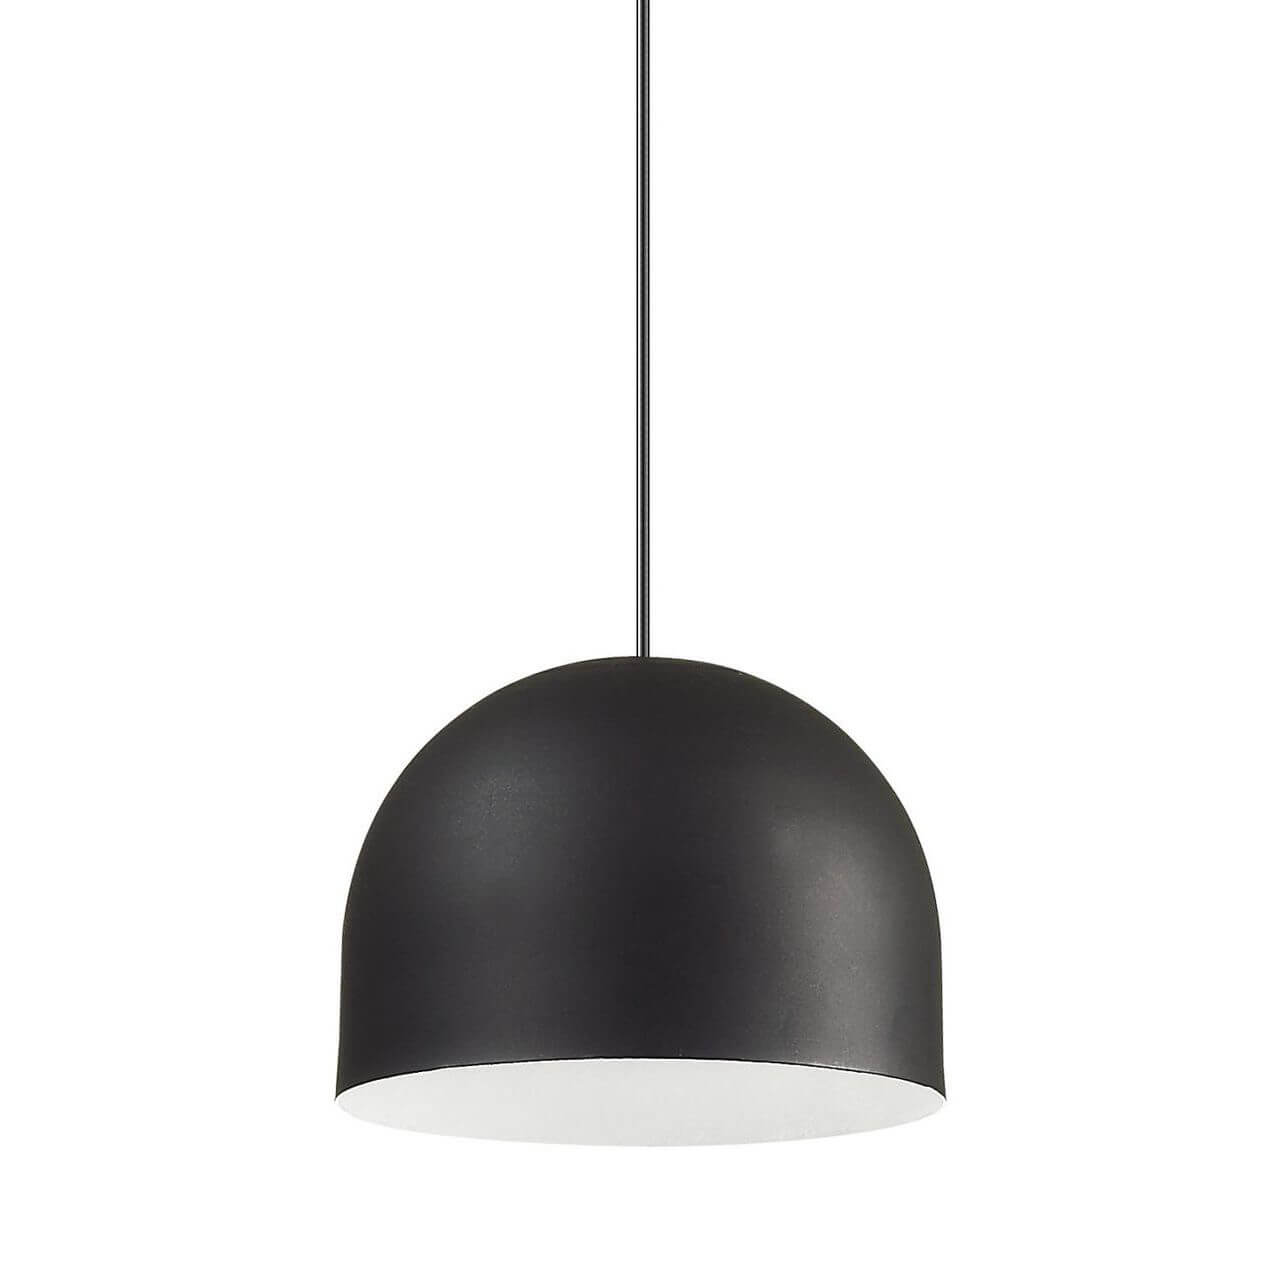 Светильник Ideal Lux Tall SP1 Big Nero